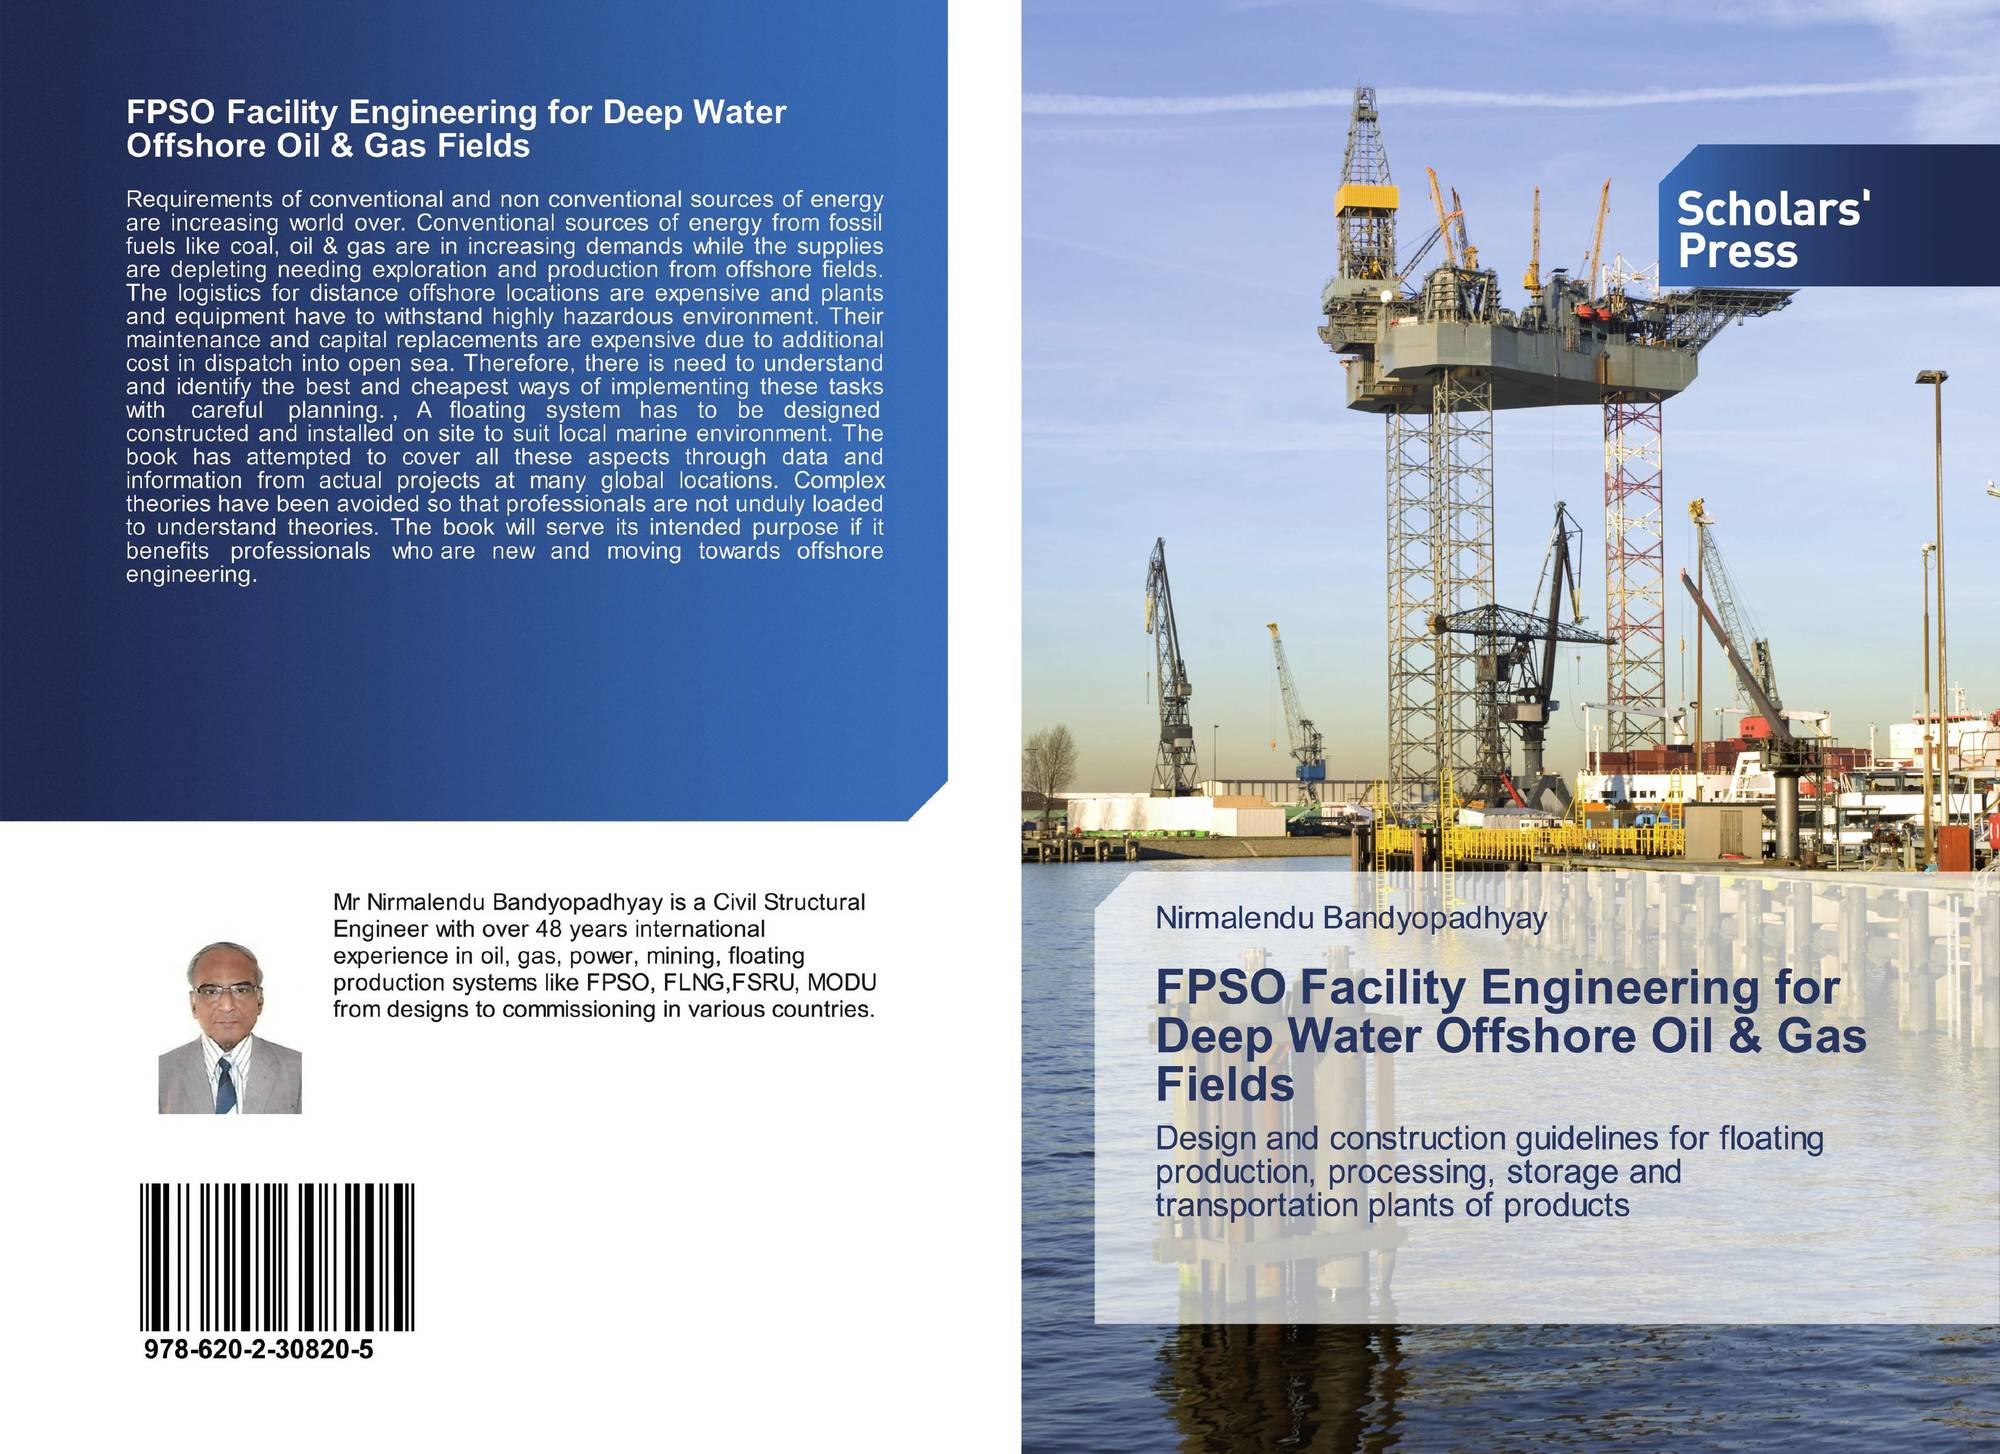 FPSO Facility Engineering for Deep Water Offshore Oil & Gas